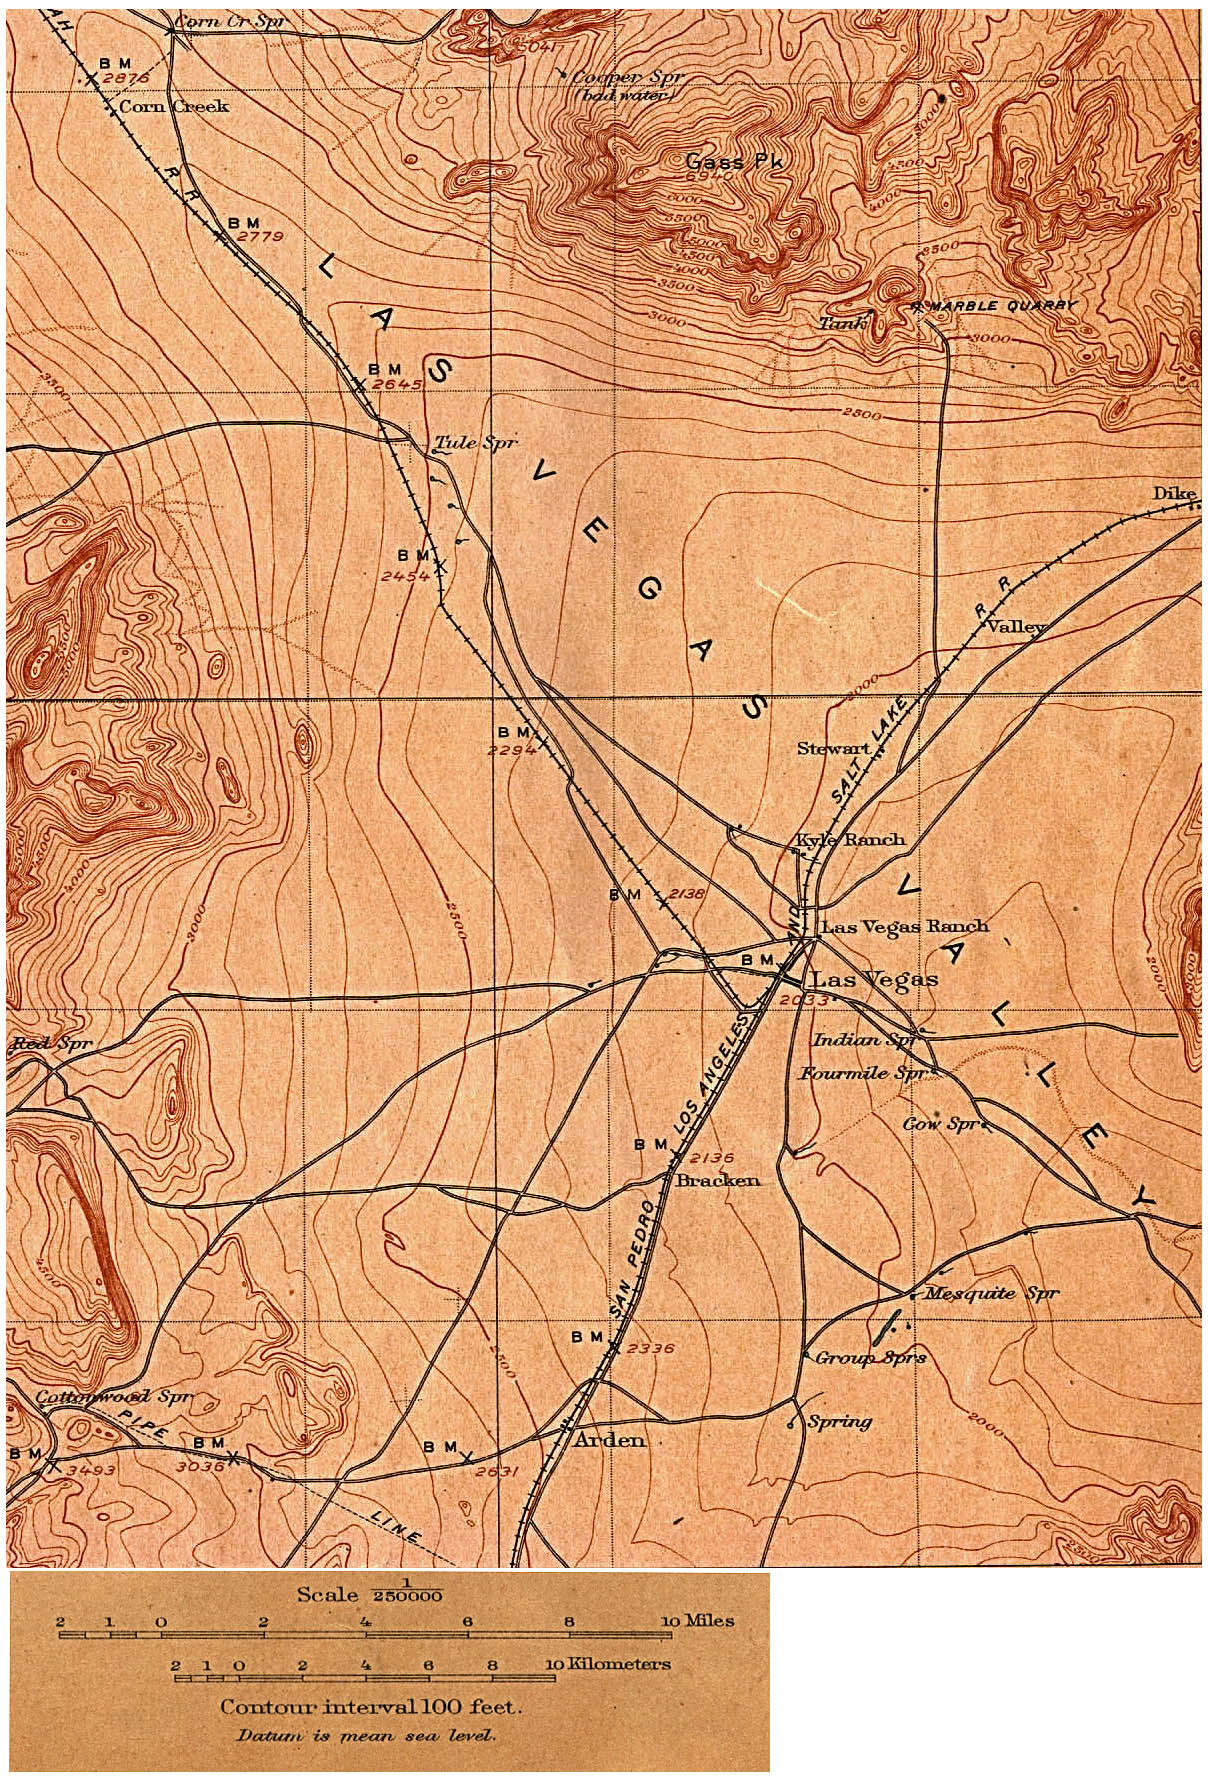 Historical Maps of U.S Cities. Las Vegas, Nevada 1908 [Topographic Map] original scale 1:250,000 U.S. Geological Survey 1908 (655K)